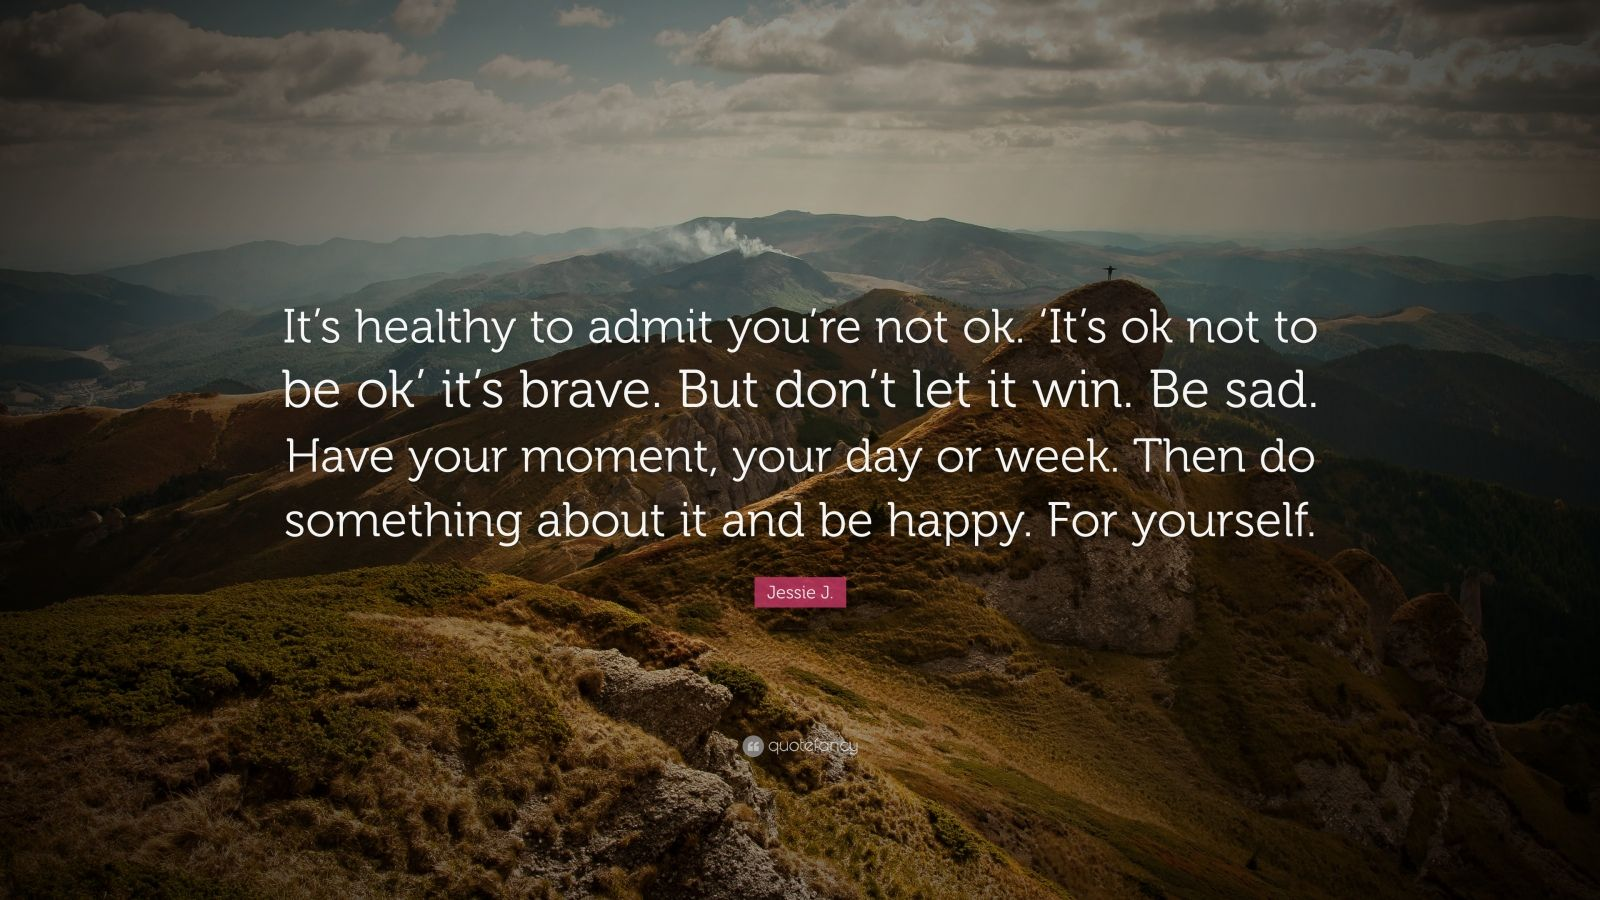 """Jessie J. Quote: """"It's healthy to admit you're not ok. 'It's ok not to be ok' it's brave. But don't let it win. Be sad. Have your moment, your day or week. Then do something about it and be happy. For yourself."""""""